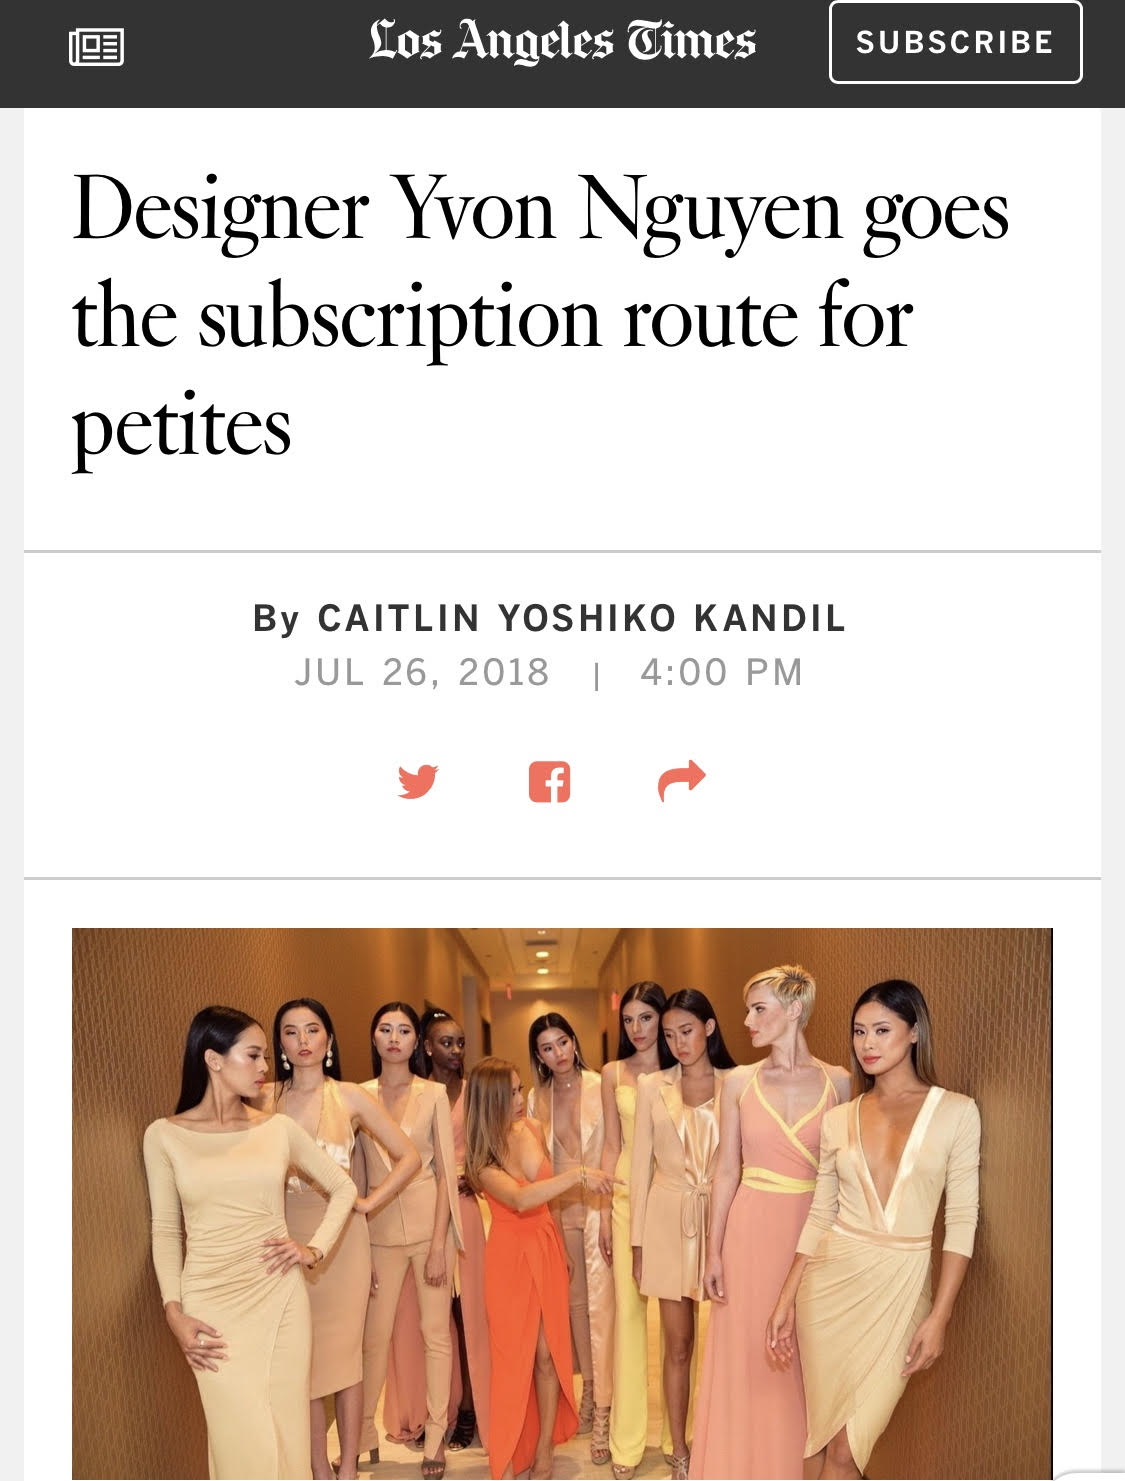 """LA Times - Now, Nguyen, who is entirely self-taught, is introducing a new venture — a subscription service for clients to receive individually designed and tailored pieces each month for a flat fee. While women's clothing subscriptions have become popular in recent years, Nguyen said that hers distinguishes itself in quality and personalization. Nothing is mass-produced, and everything is made-to-order with the specific client in mind.""""We want to be the go-to for busy, successful women who can have their own stylist, their own designer, and not worry about having to spend hours at the mall,"""" she said."""